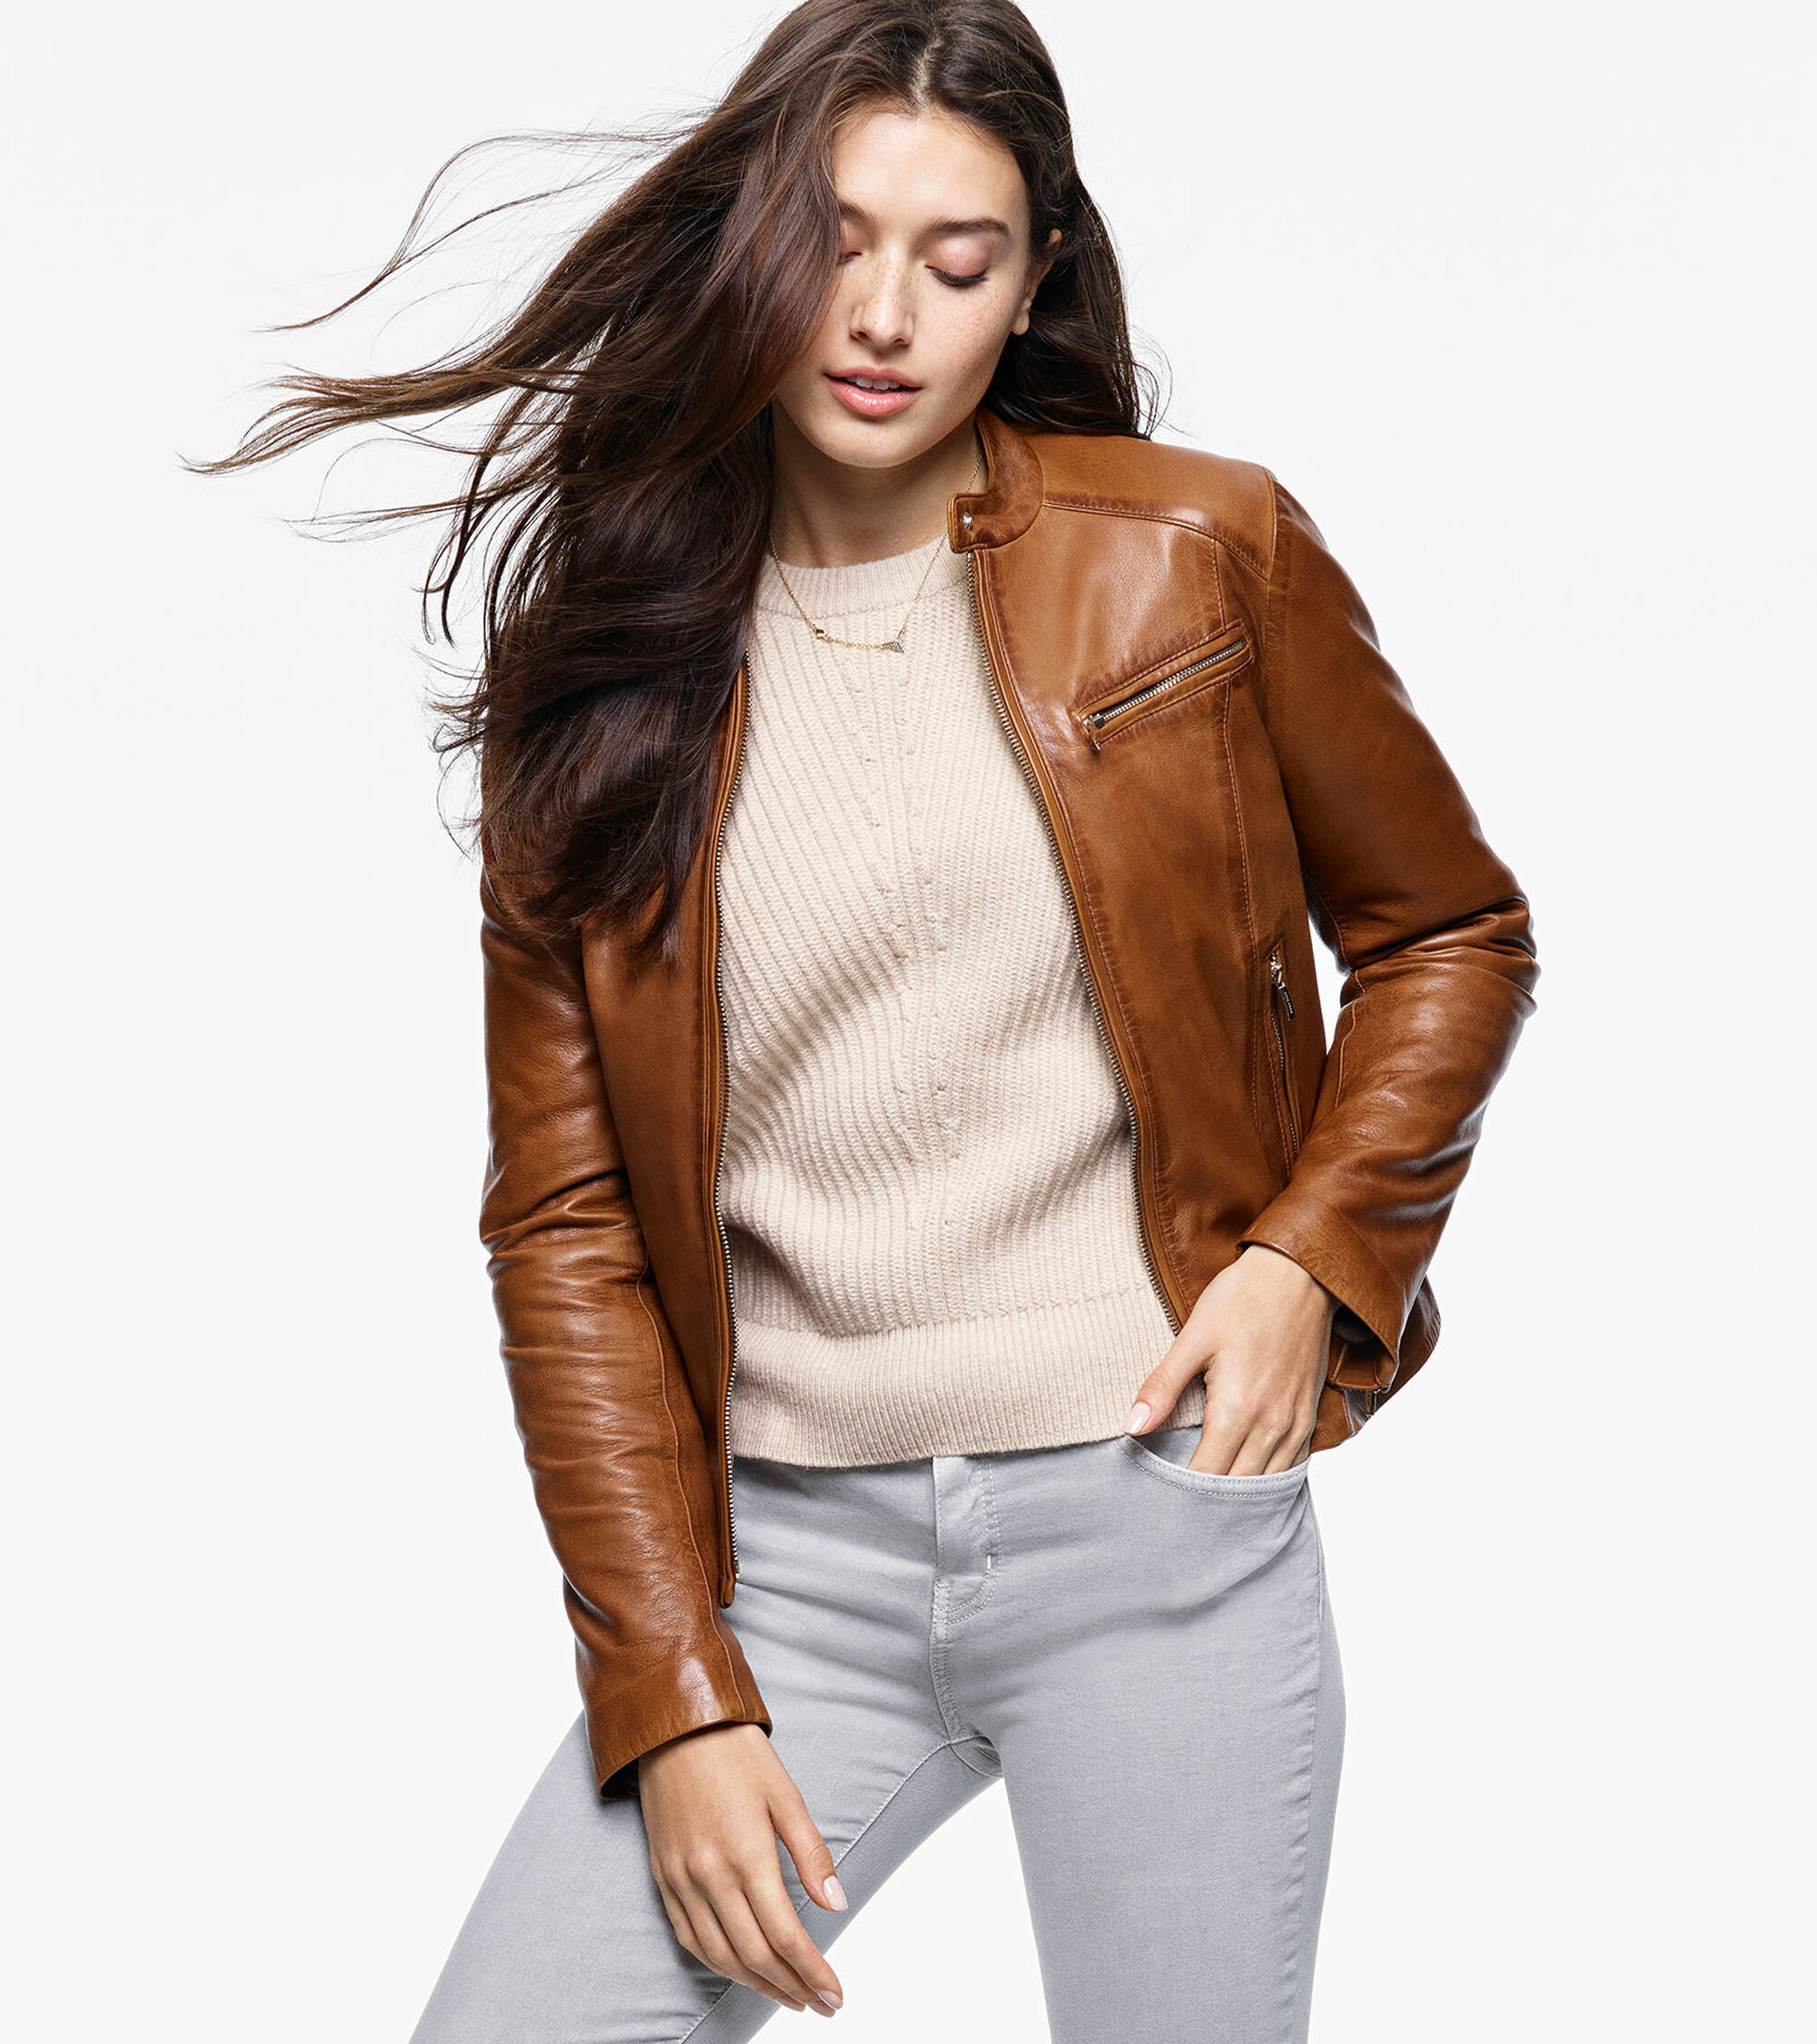 Burnished Lamb Leather Band-Collar Moto Jacket in Pecan | Cole Haan : cole haan leather jacket diamond quilted - Adamdwight.com